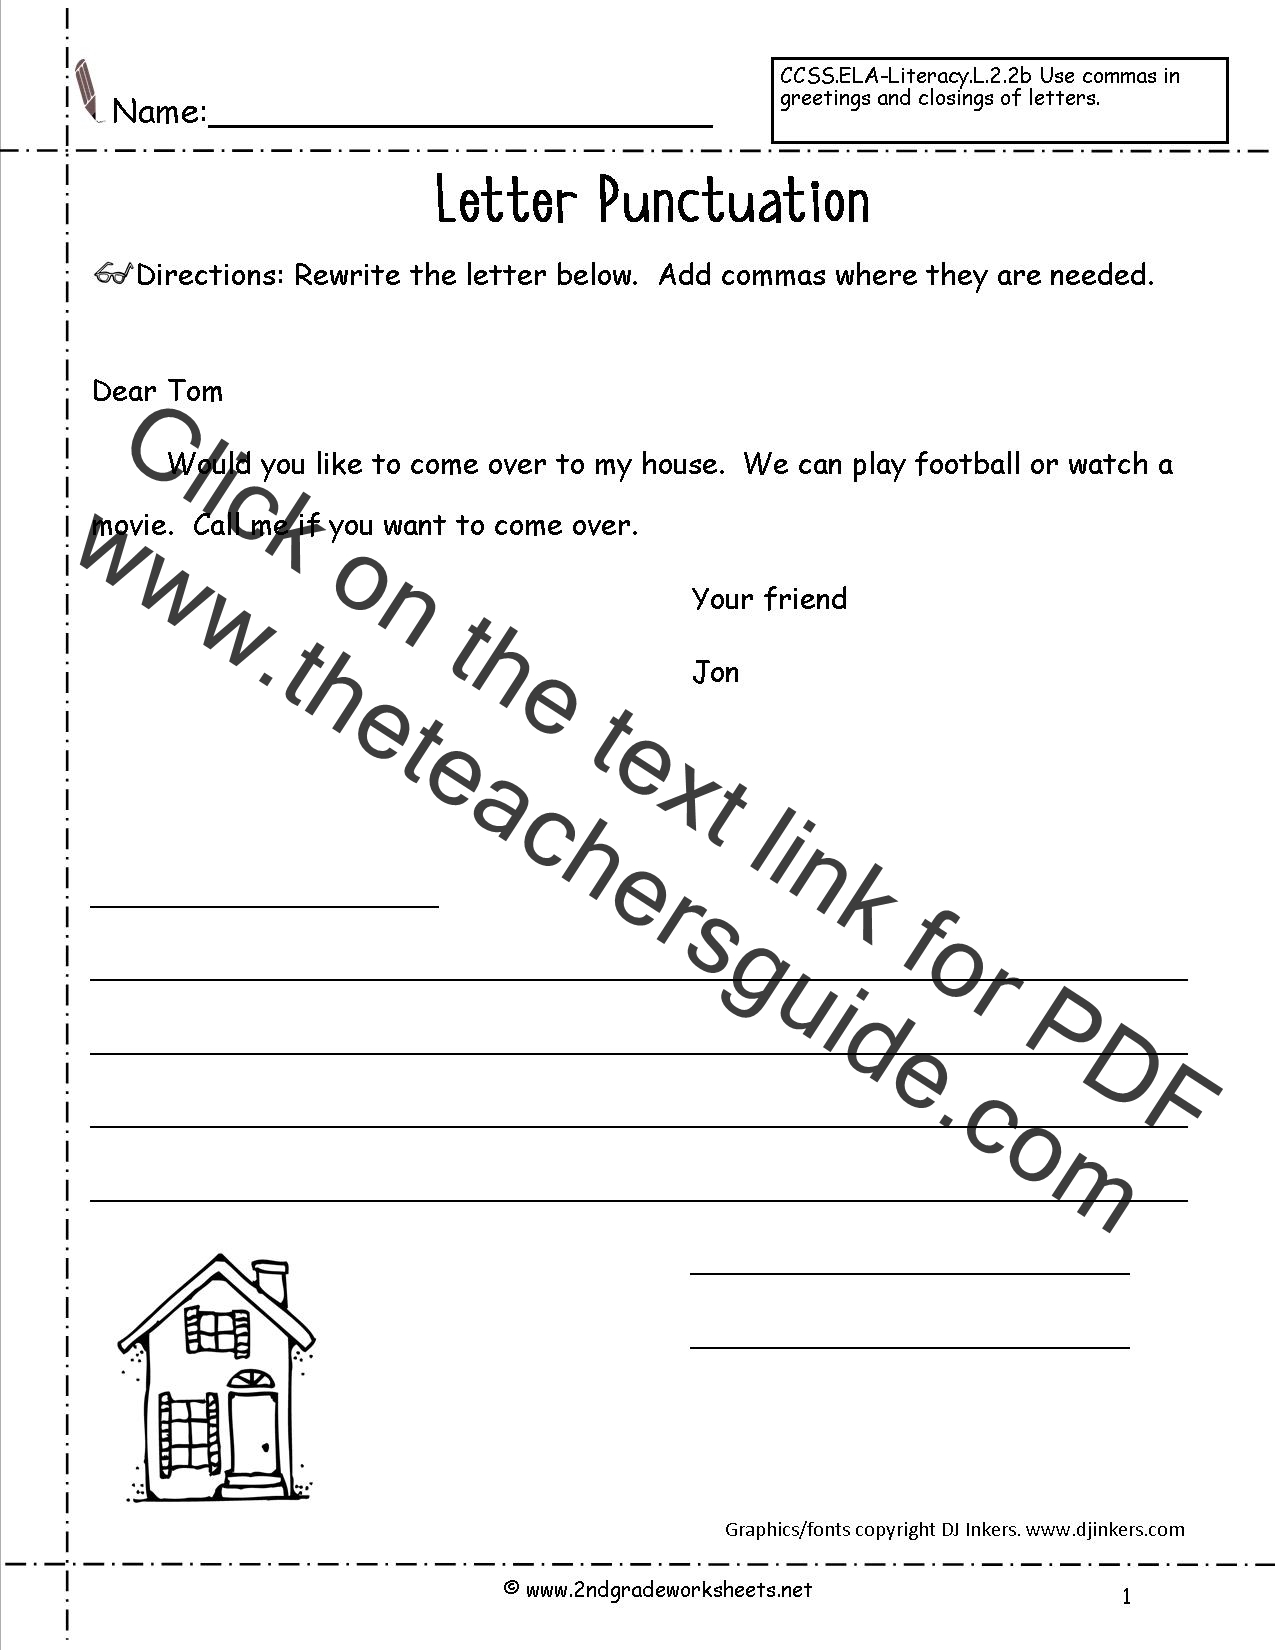 Letters and parts of a letter worksheet friendly letter punctuation spiritdancerdesigns Images